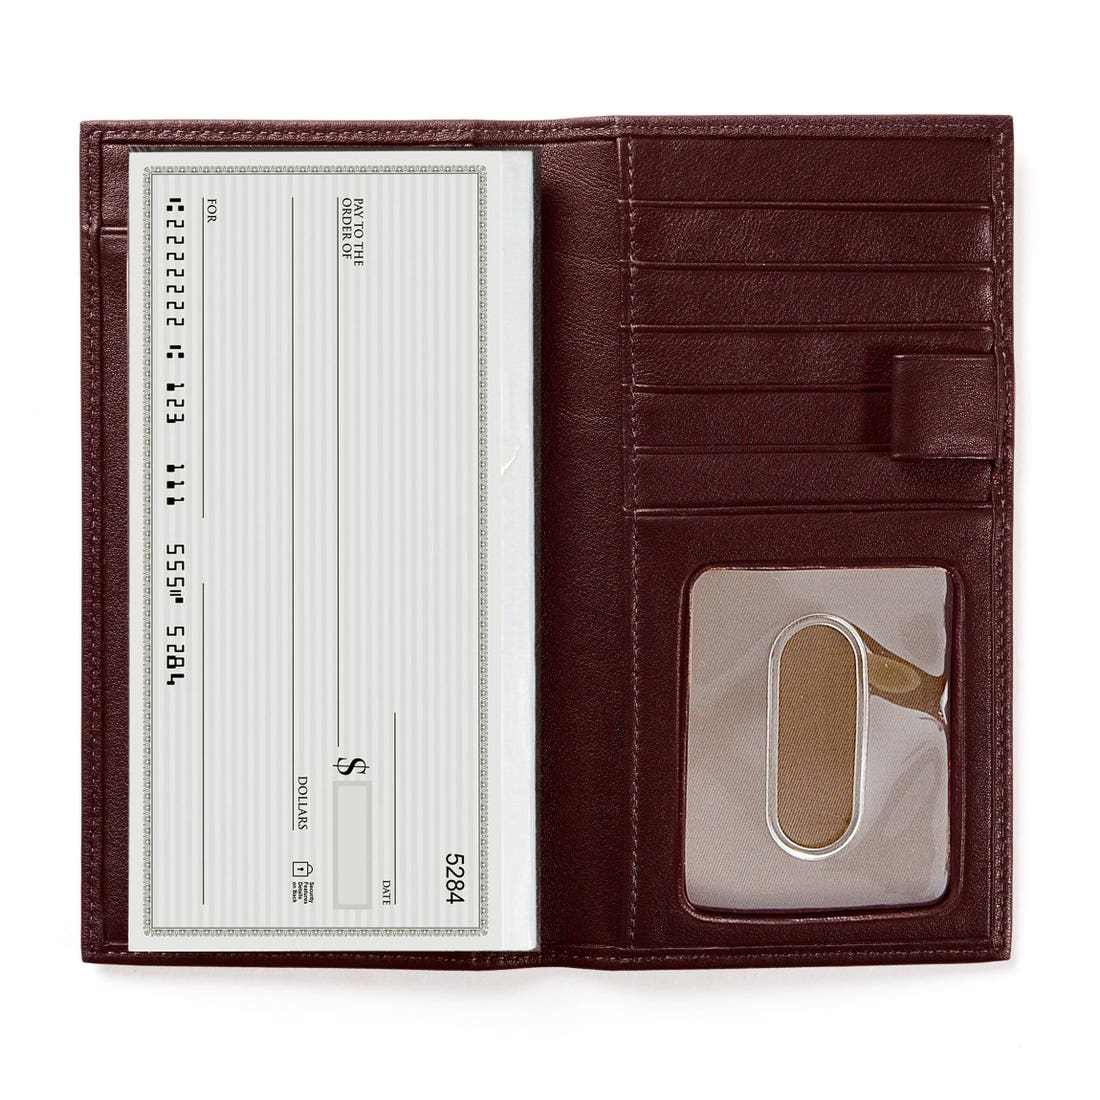 Checkbook & Card Holder with Divider